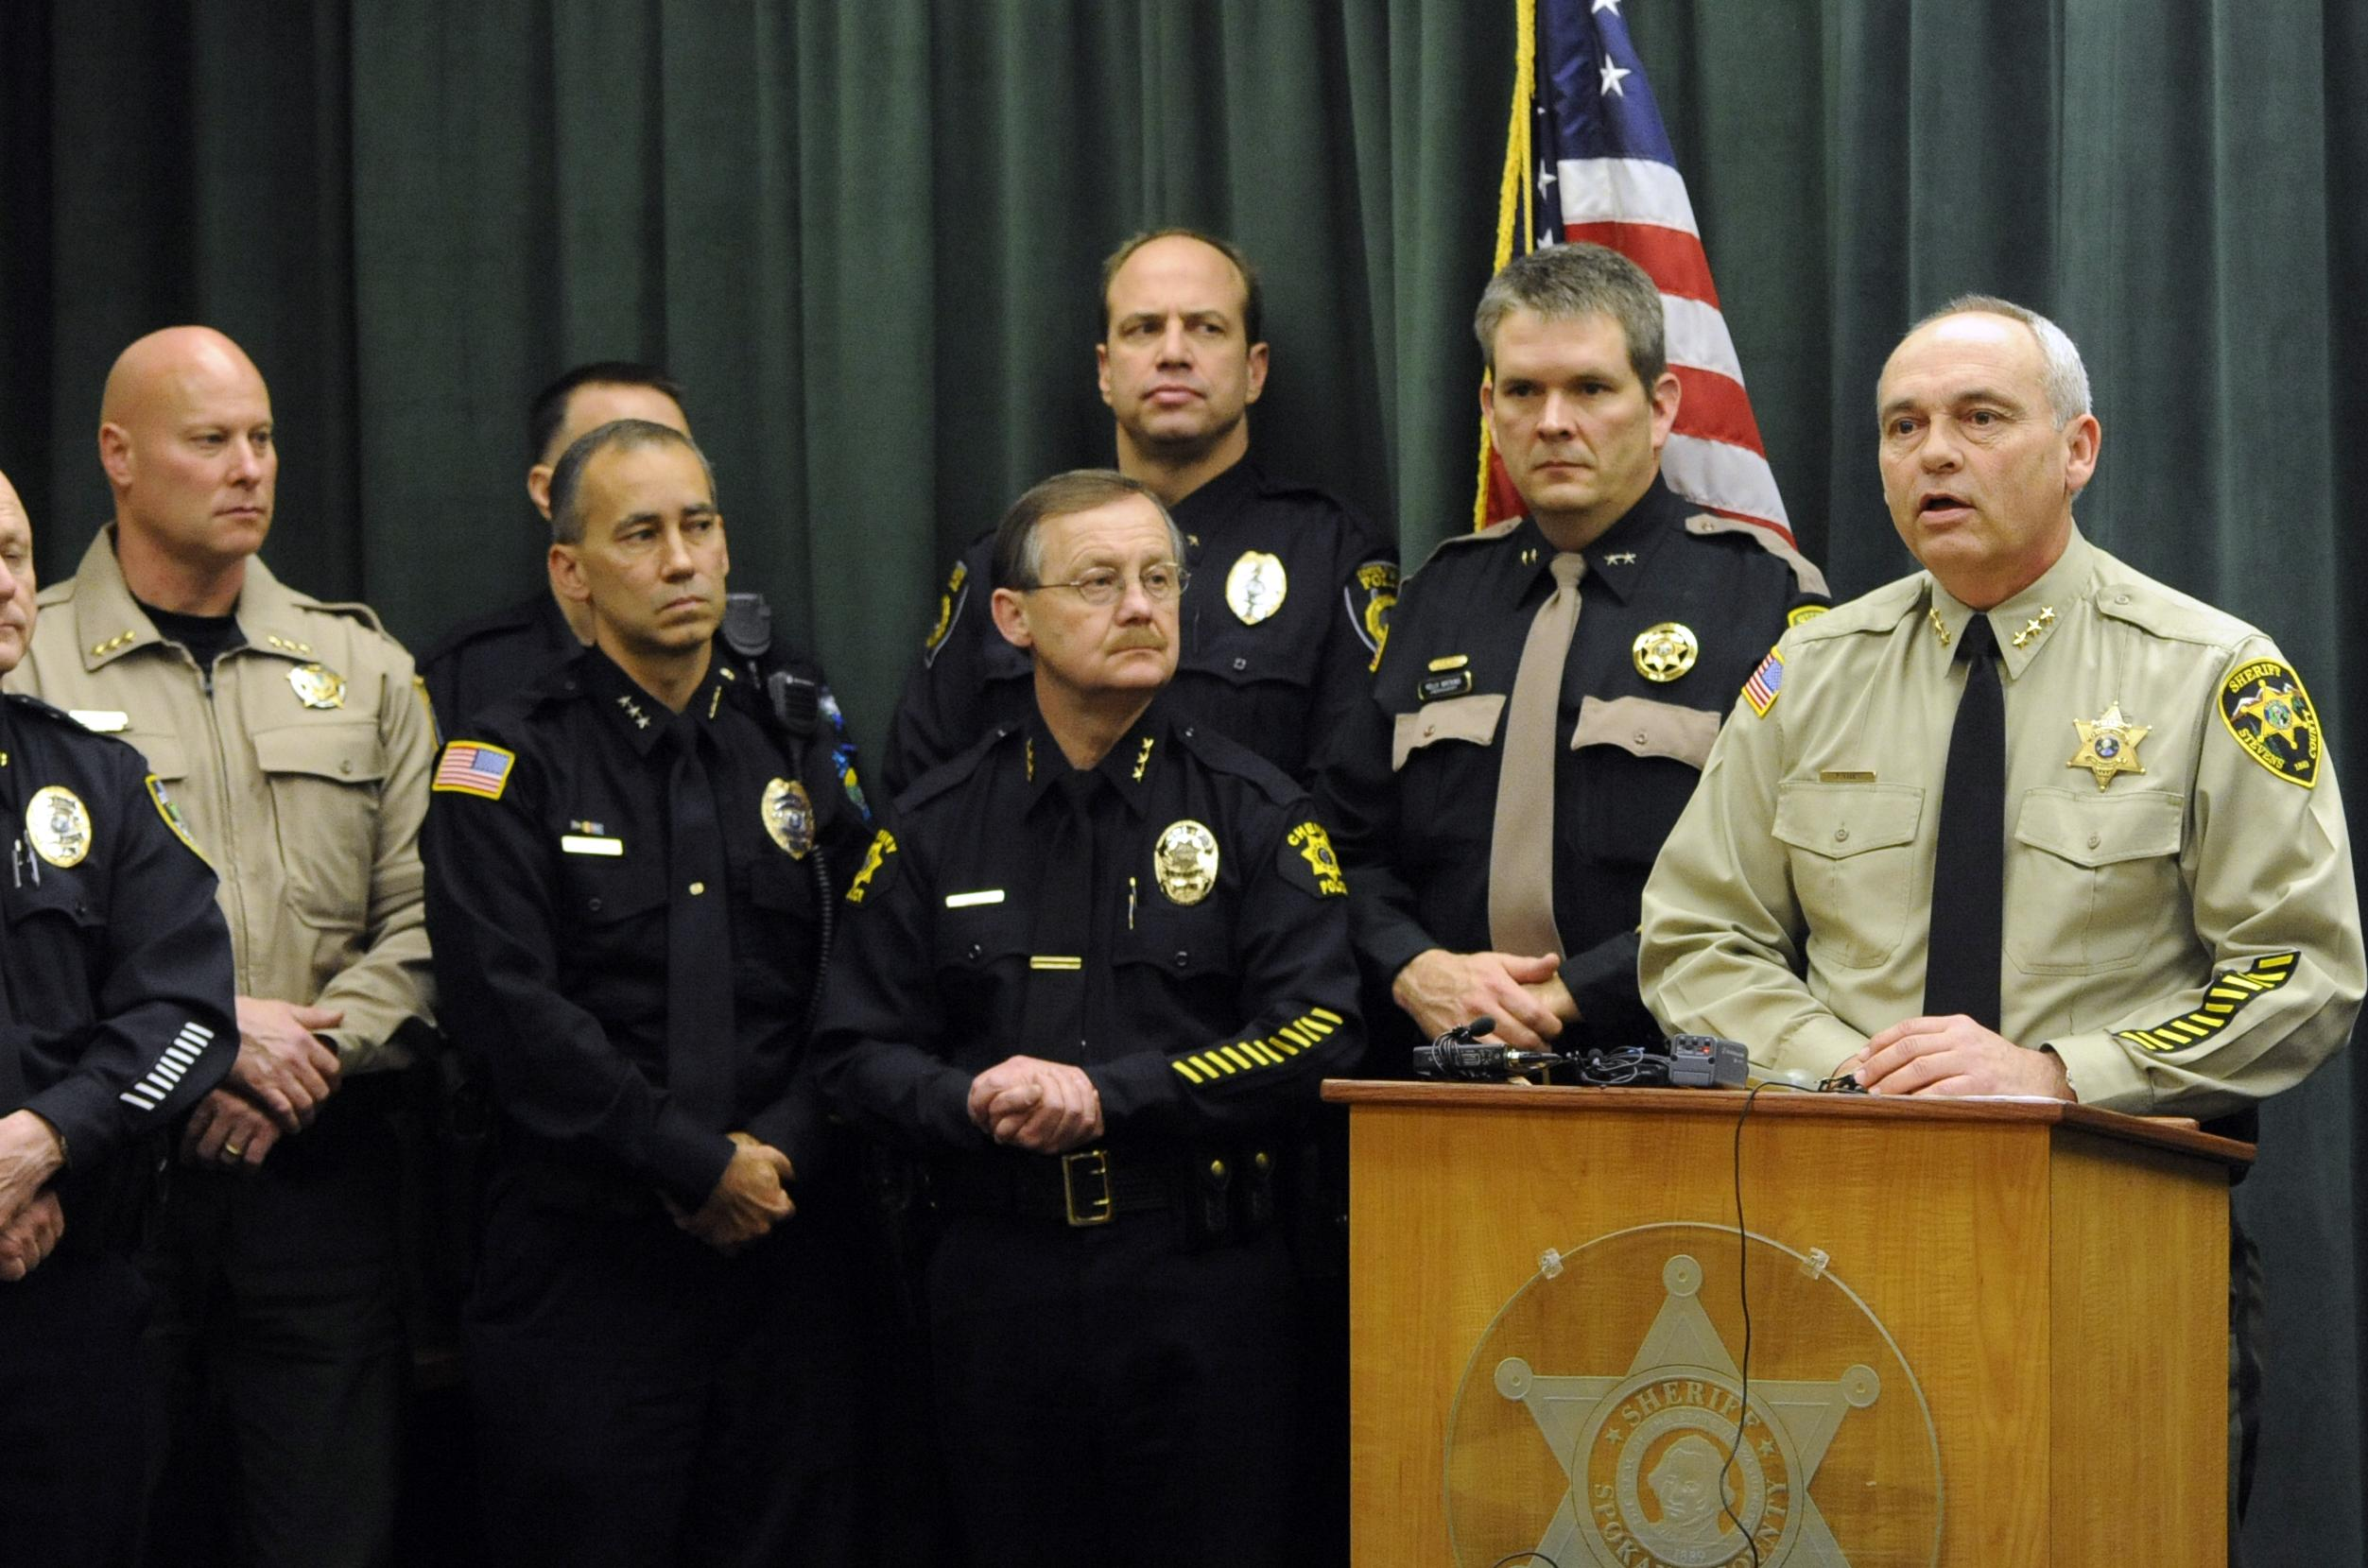 After two terms, Stevens County Sheriff Kendle Allen to